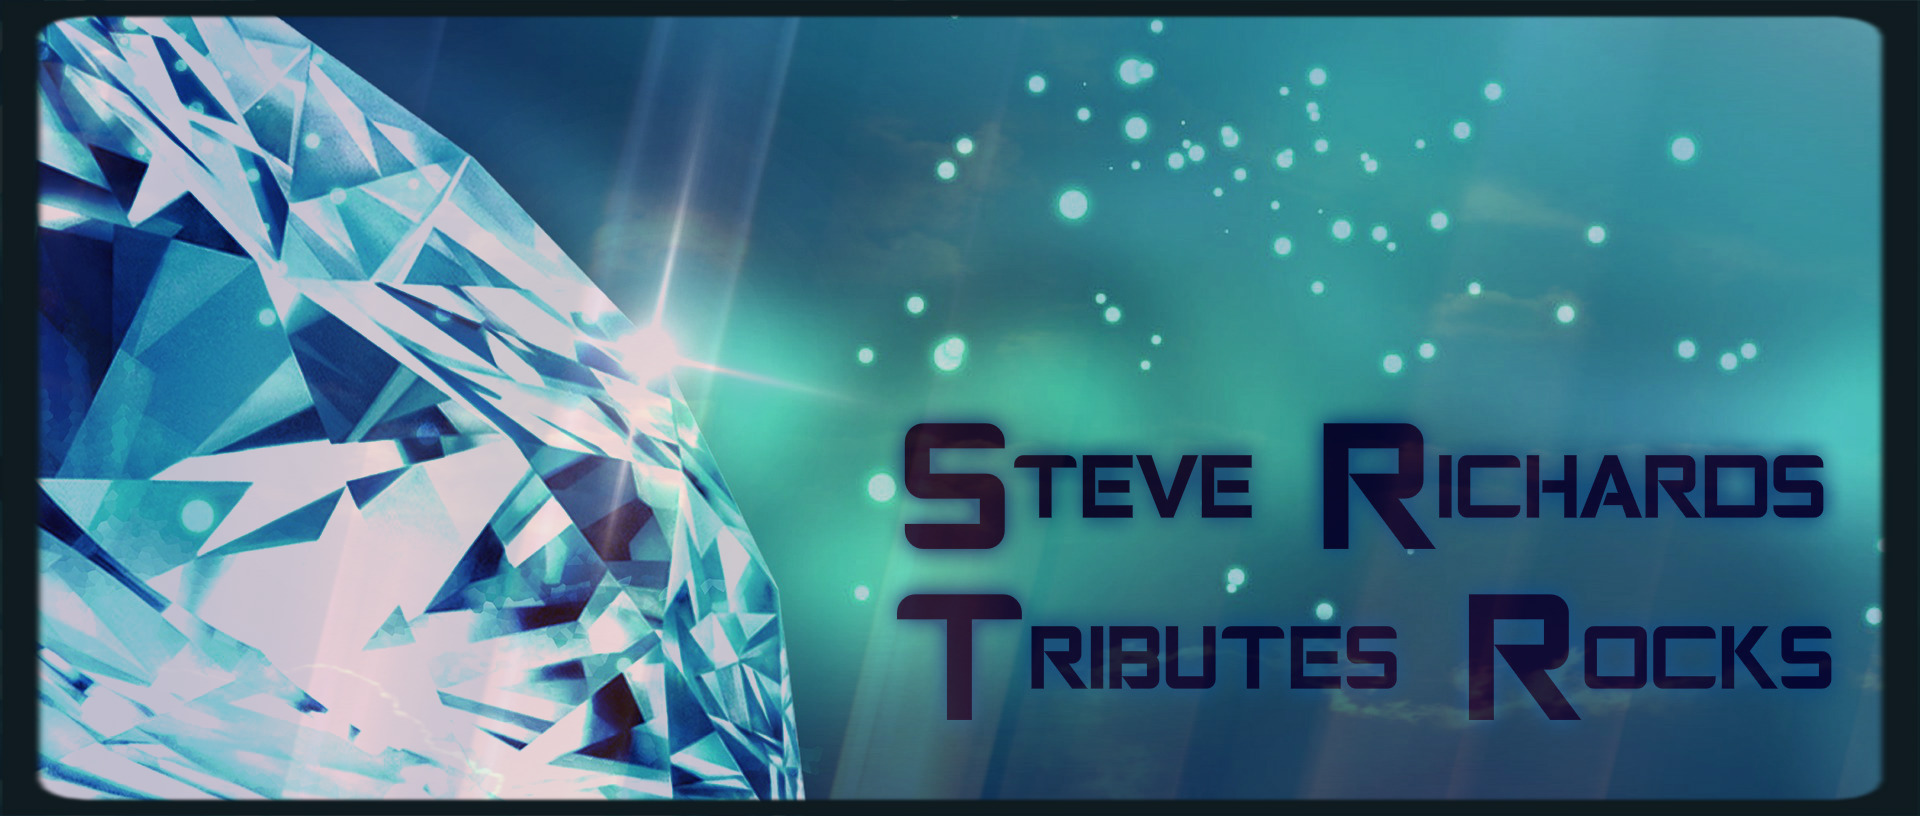 Steve Richards Tributes Rocks !